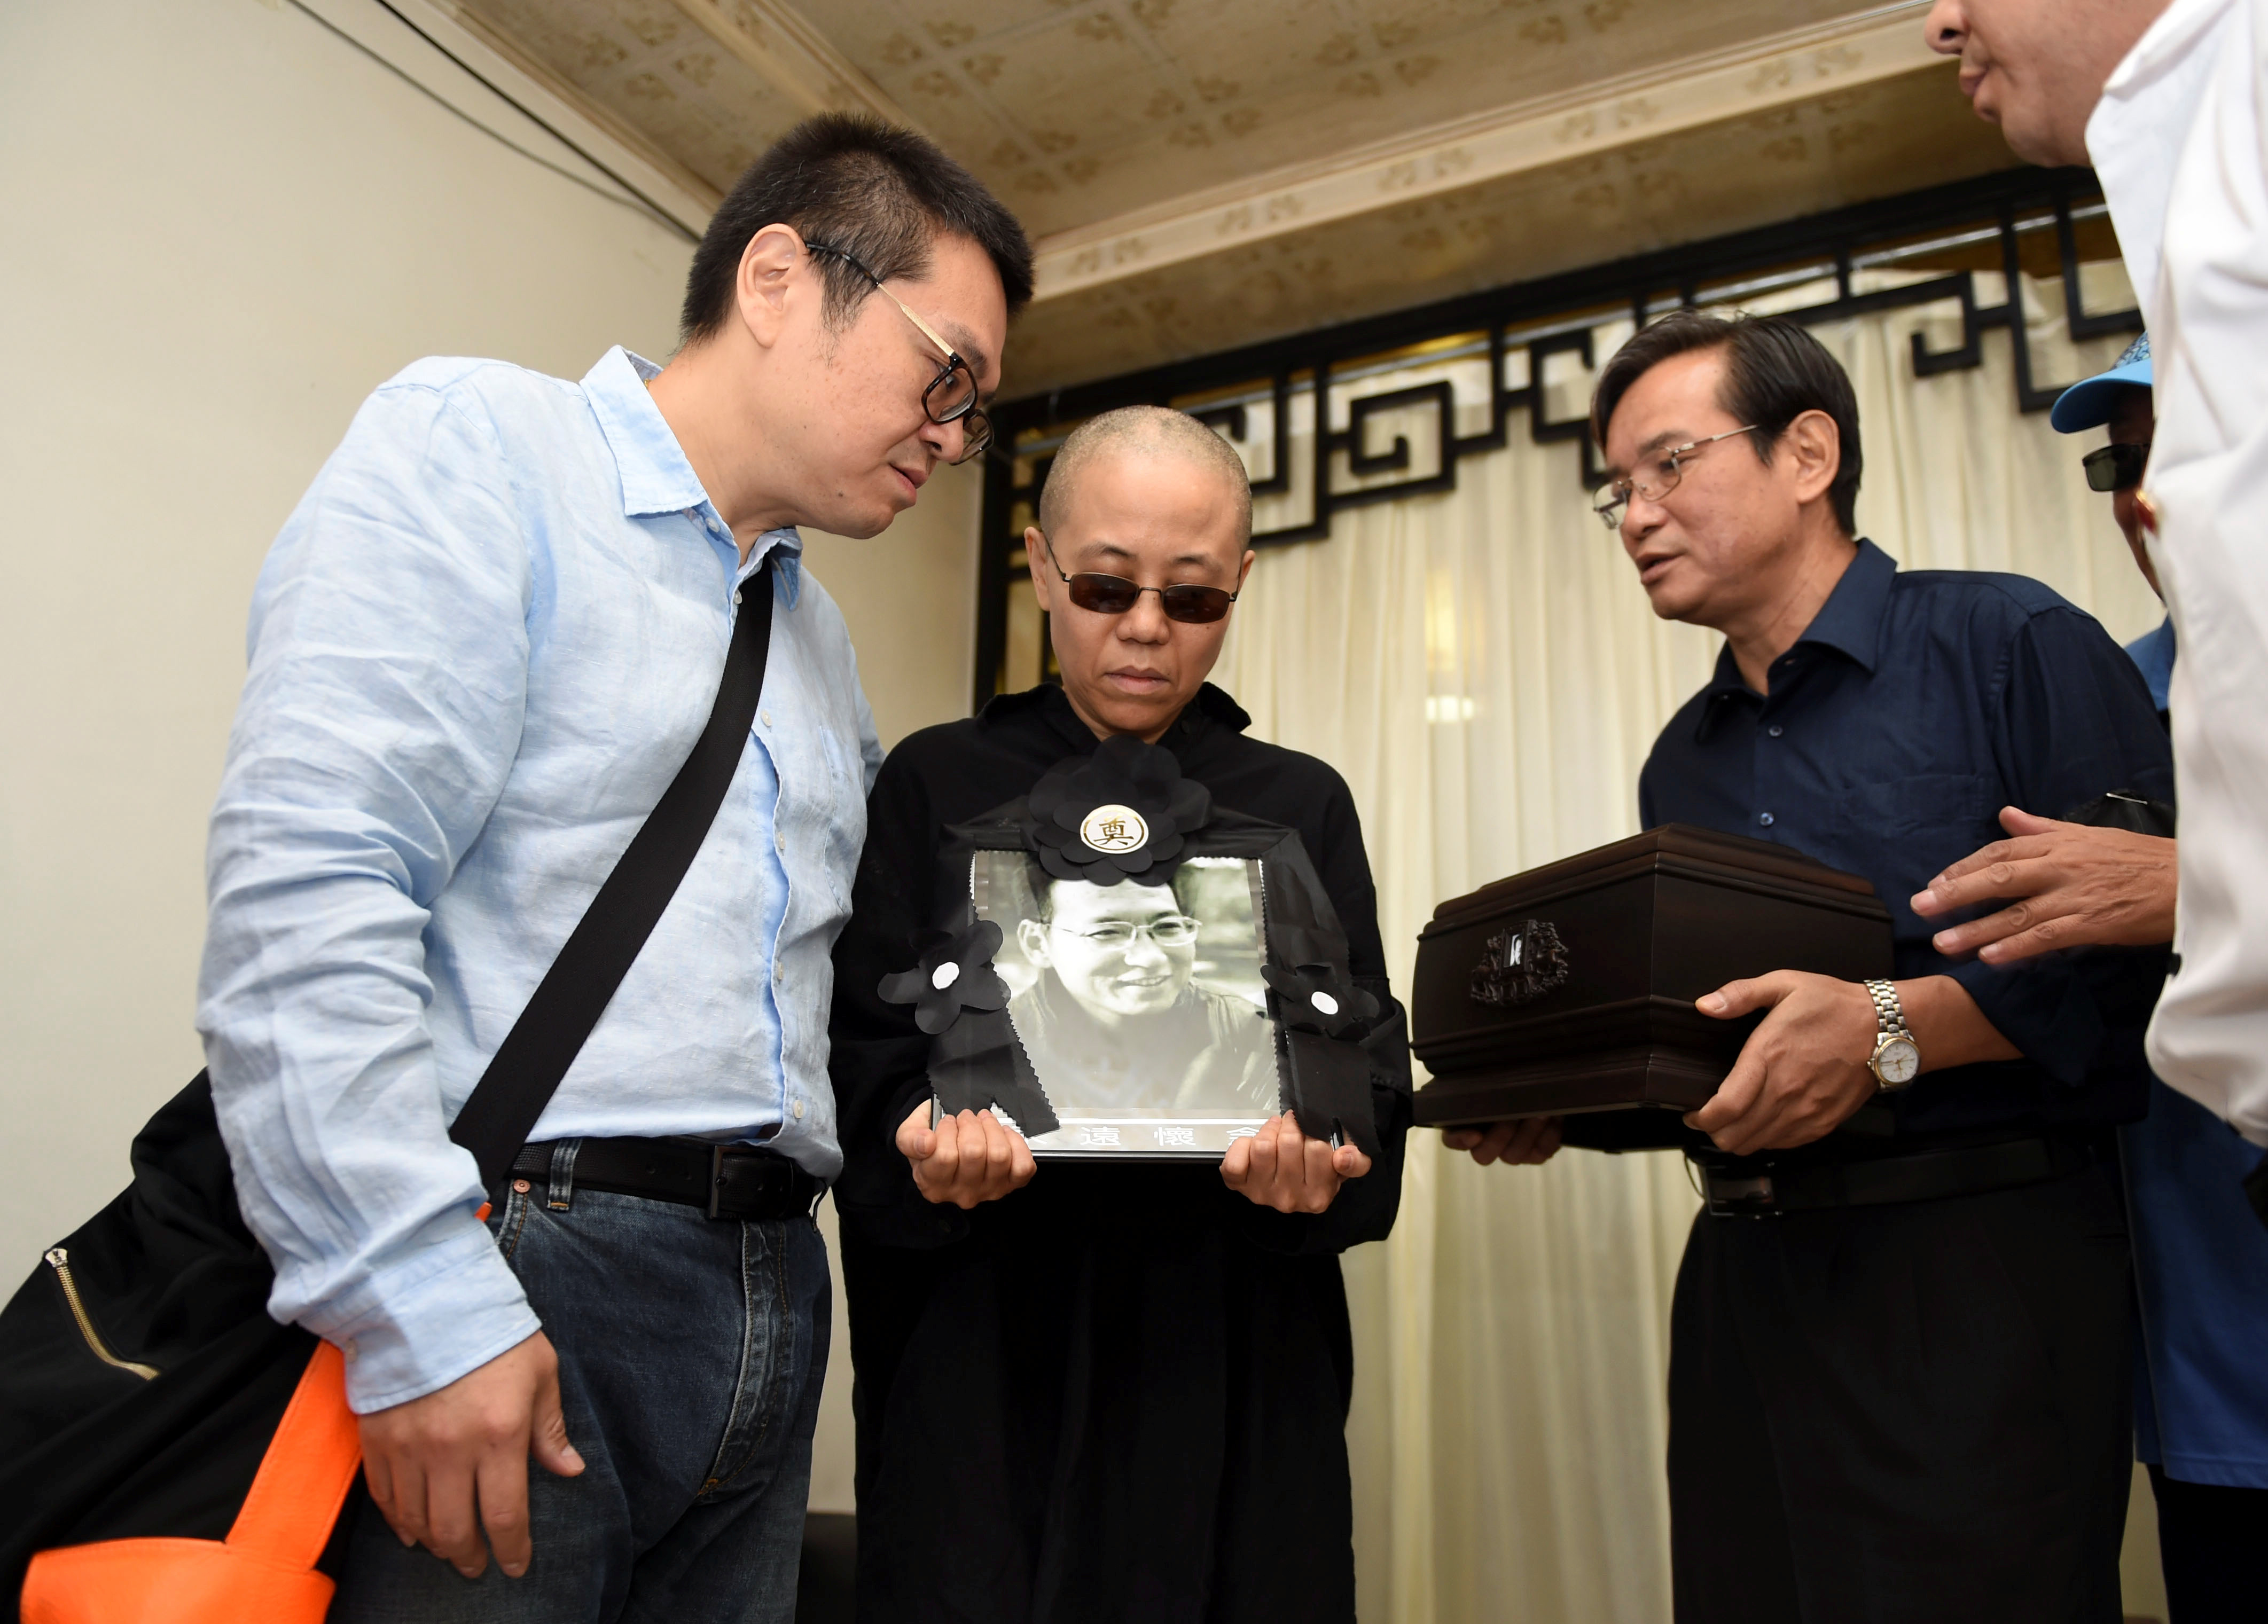 Liu Xia holds a picture of her husband, deceased Chinese Nobel laureate Liu Xiaobo, during his funeral in Shenyang, China on July 15, 2017.